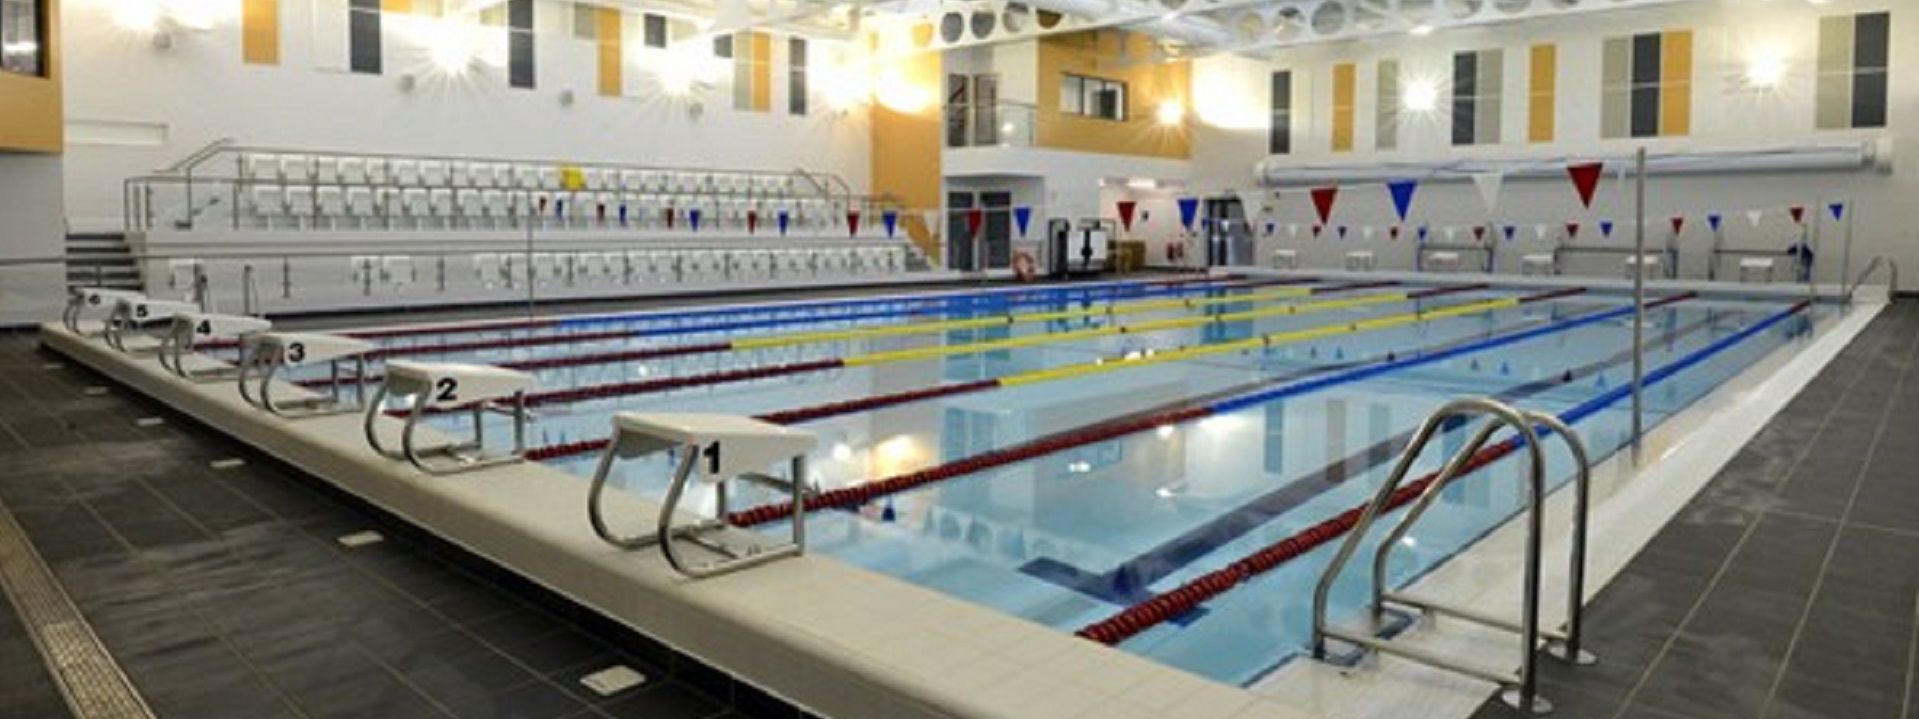 Hire our pool for your club...